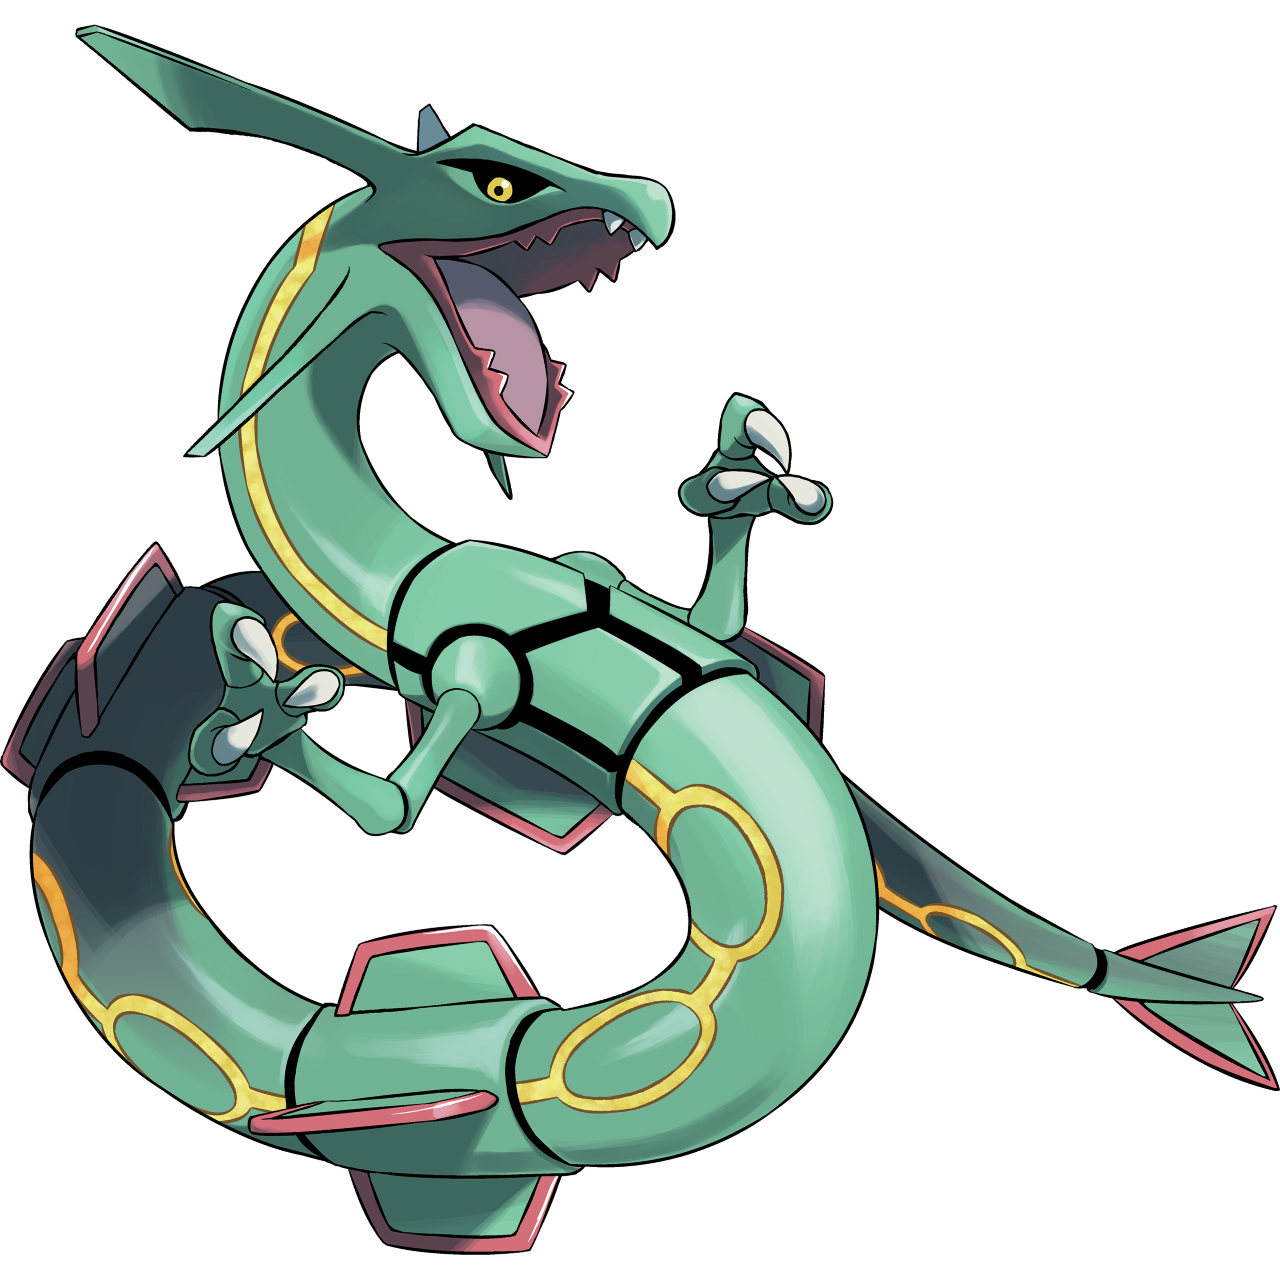 I dare you to take one look at this Rayquaza and tell me you don't want this badass on your team.